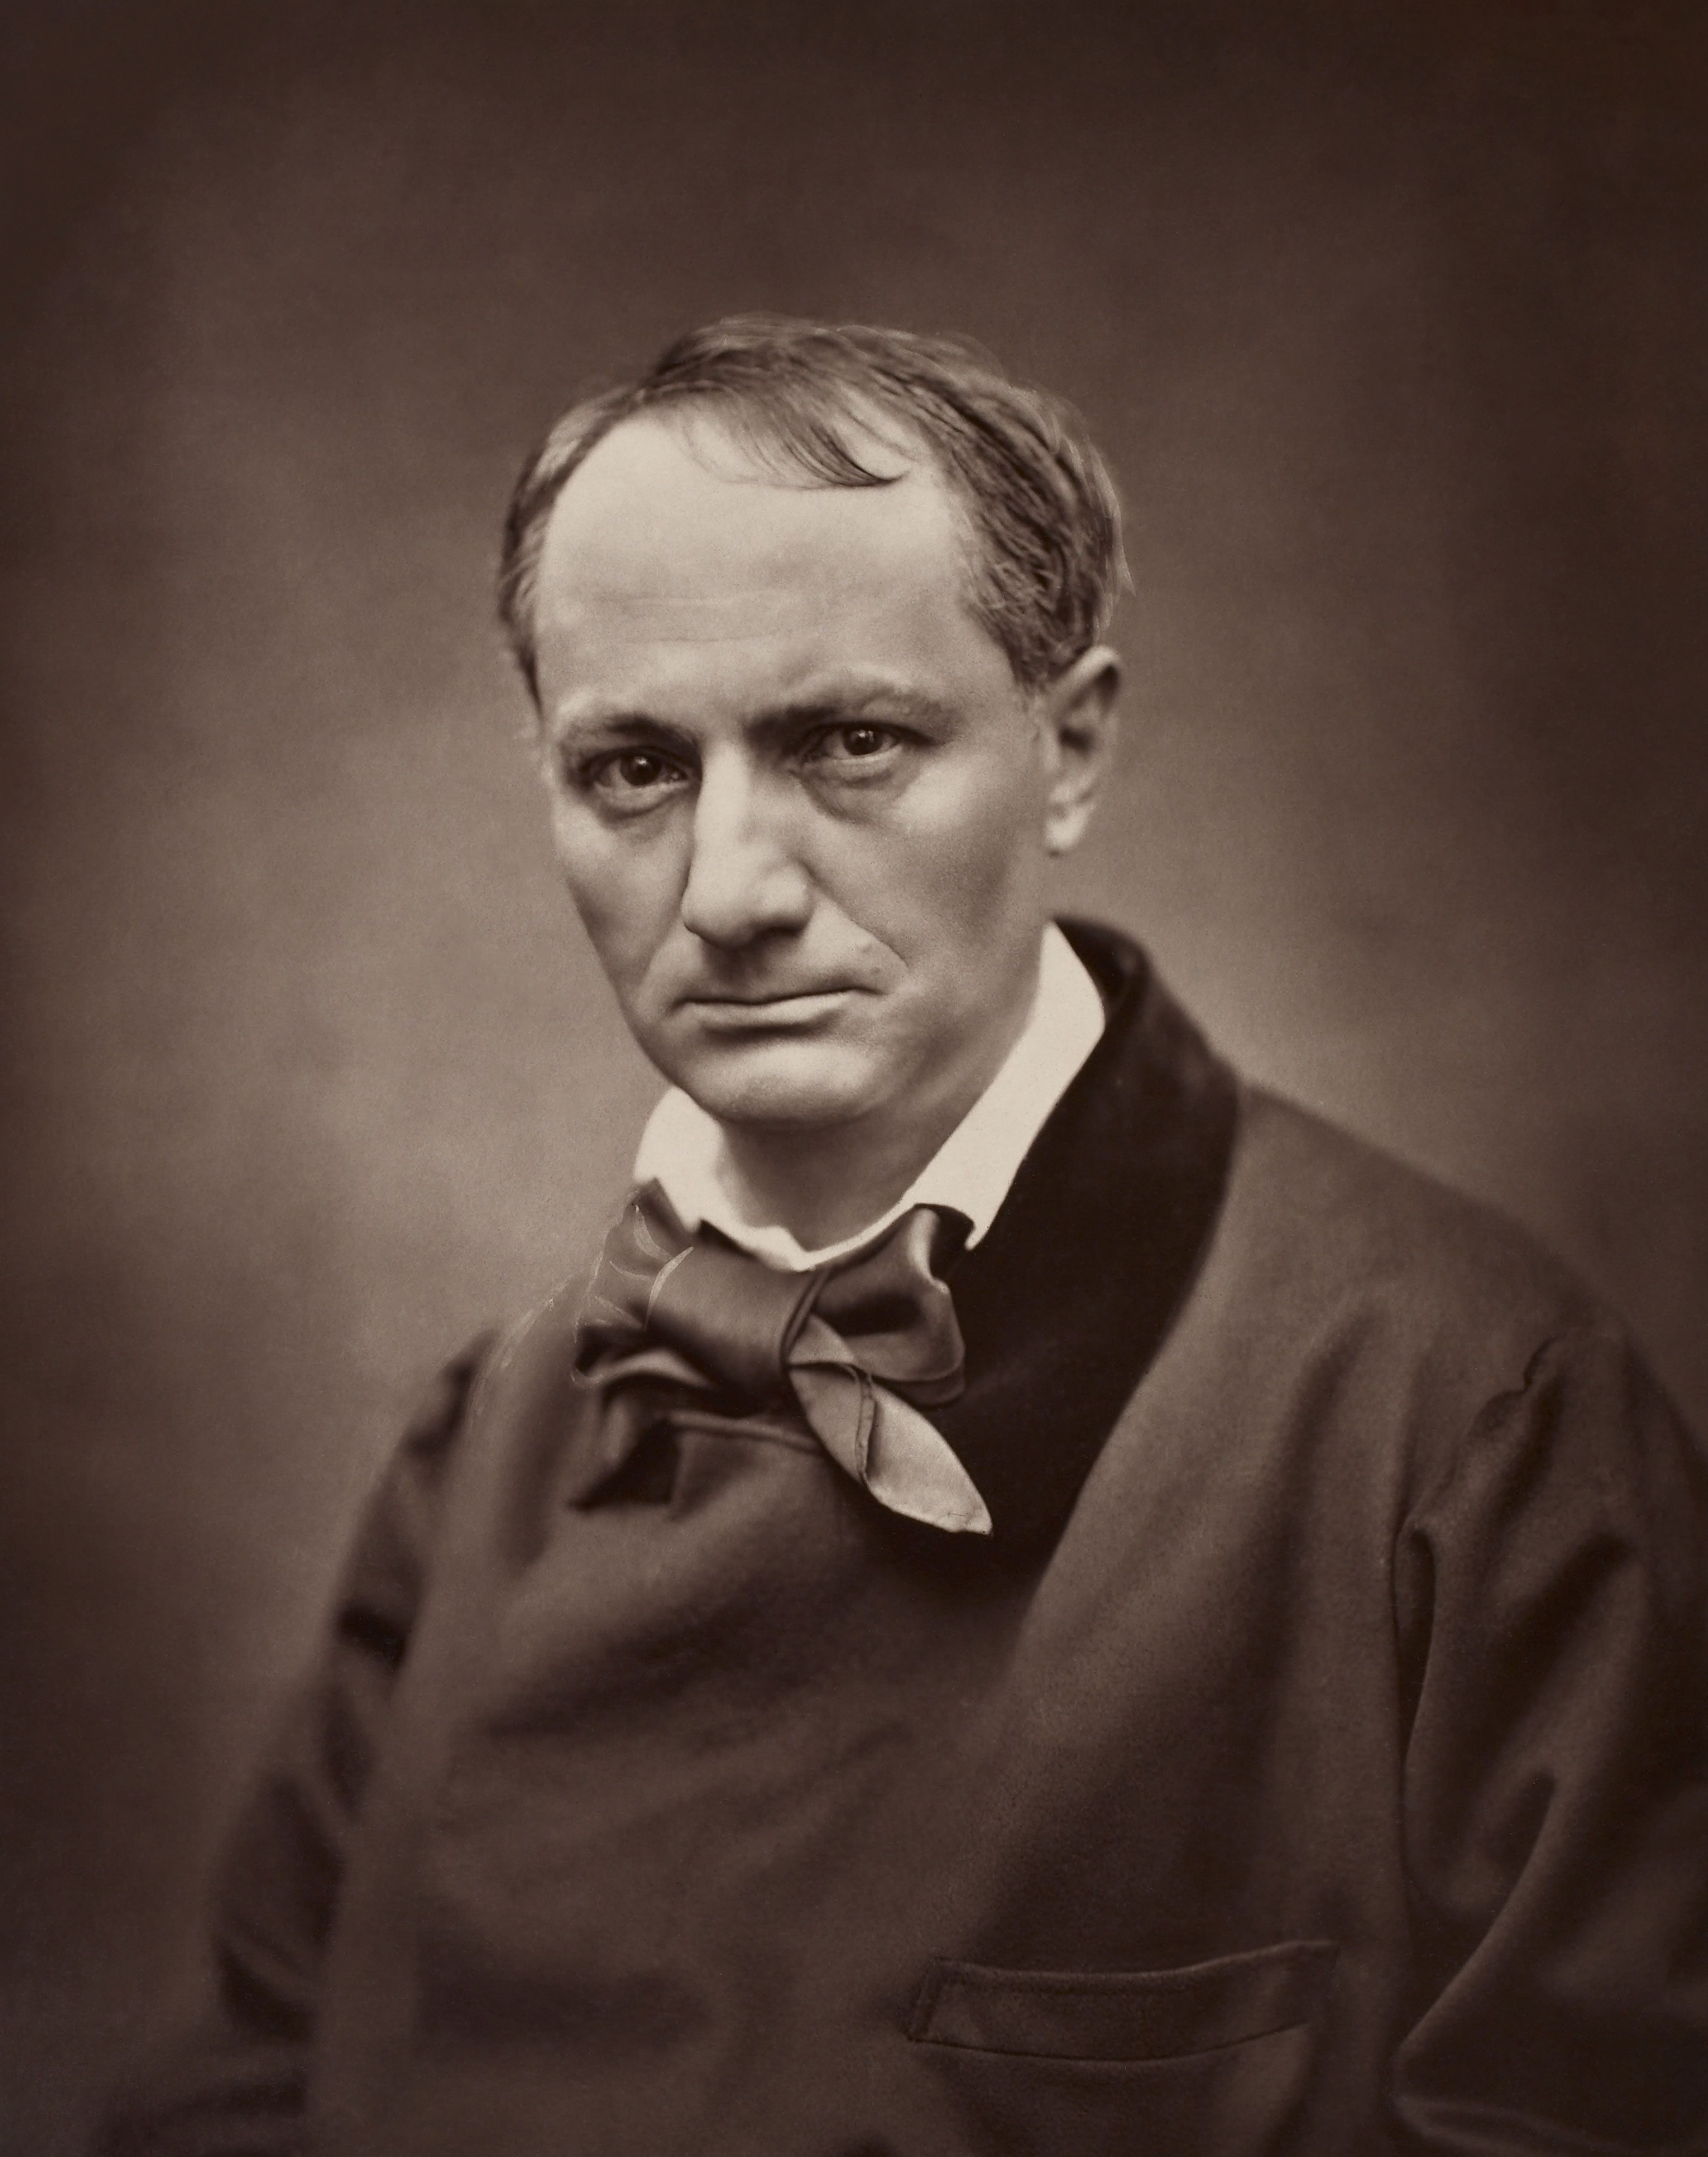 Depiction of Charles Baudelaire